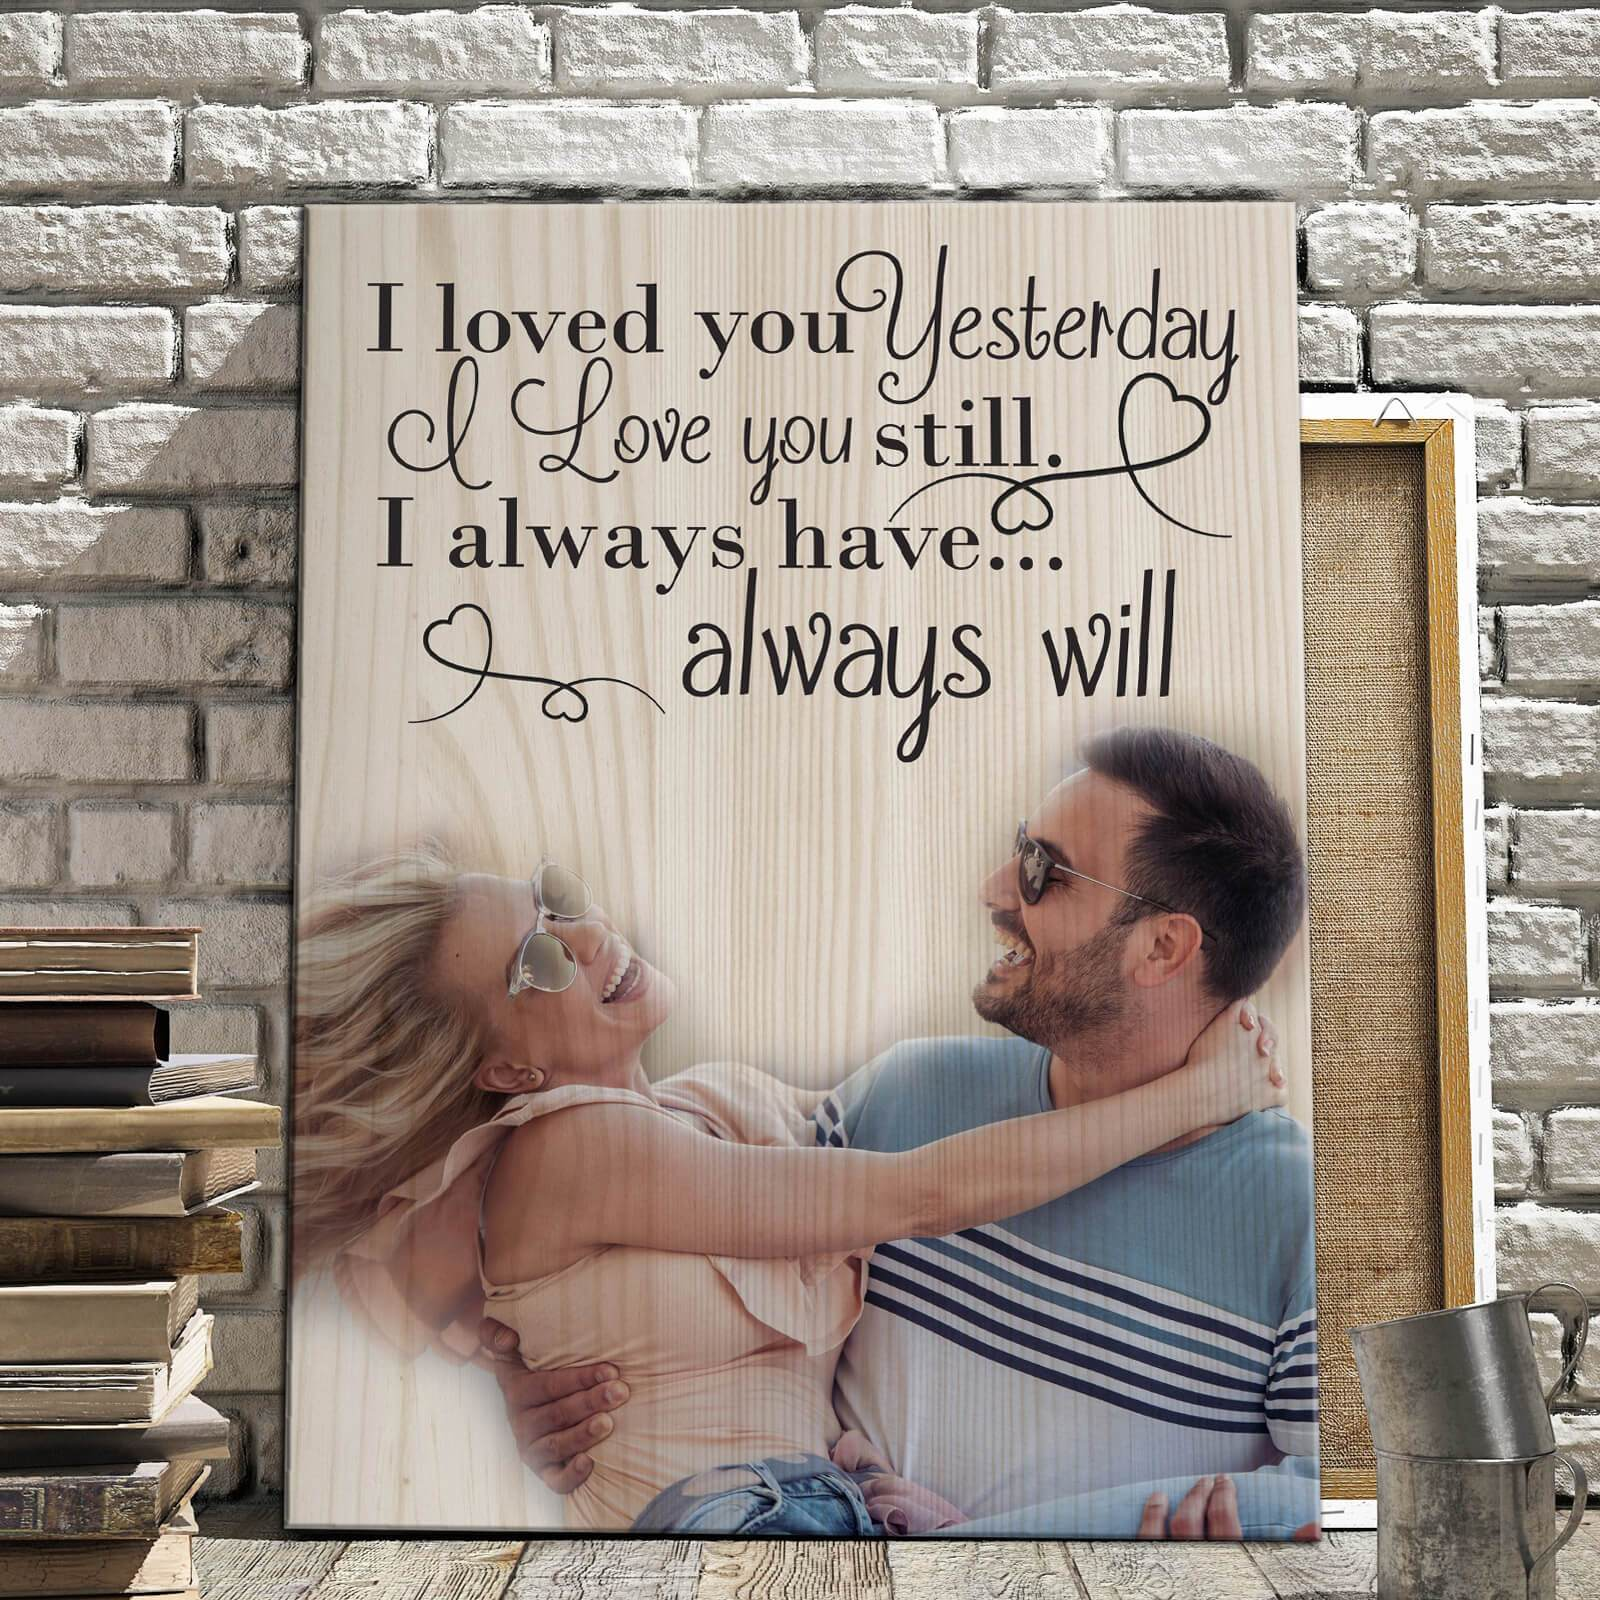 I loved You Yesterday - Personalized